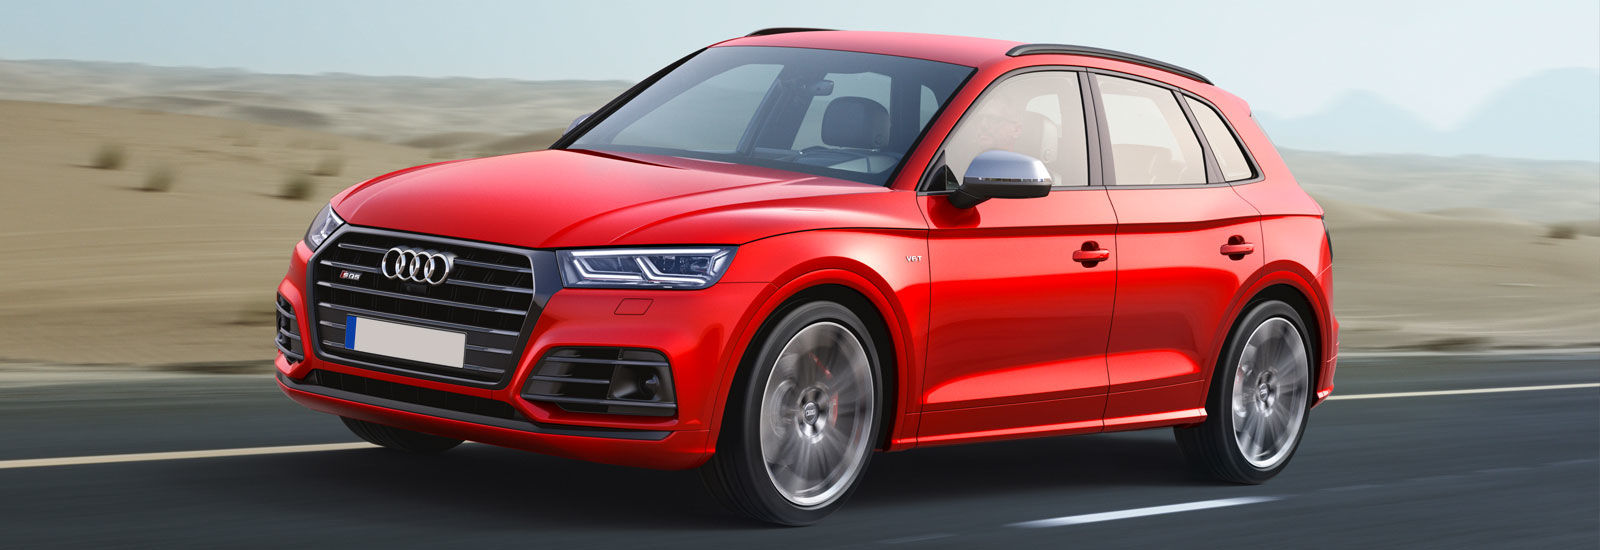 2017 audi sq5 price specs and release date carwow. Black Bedroom Furniture Sets. Home Design Ideas